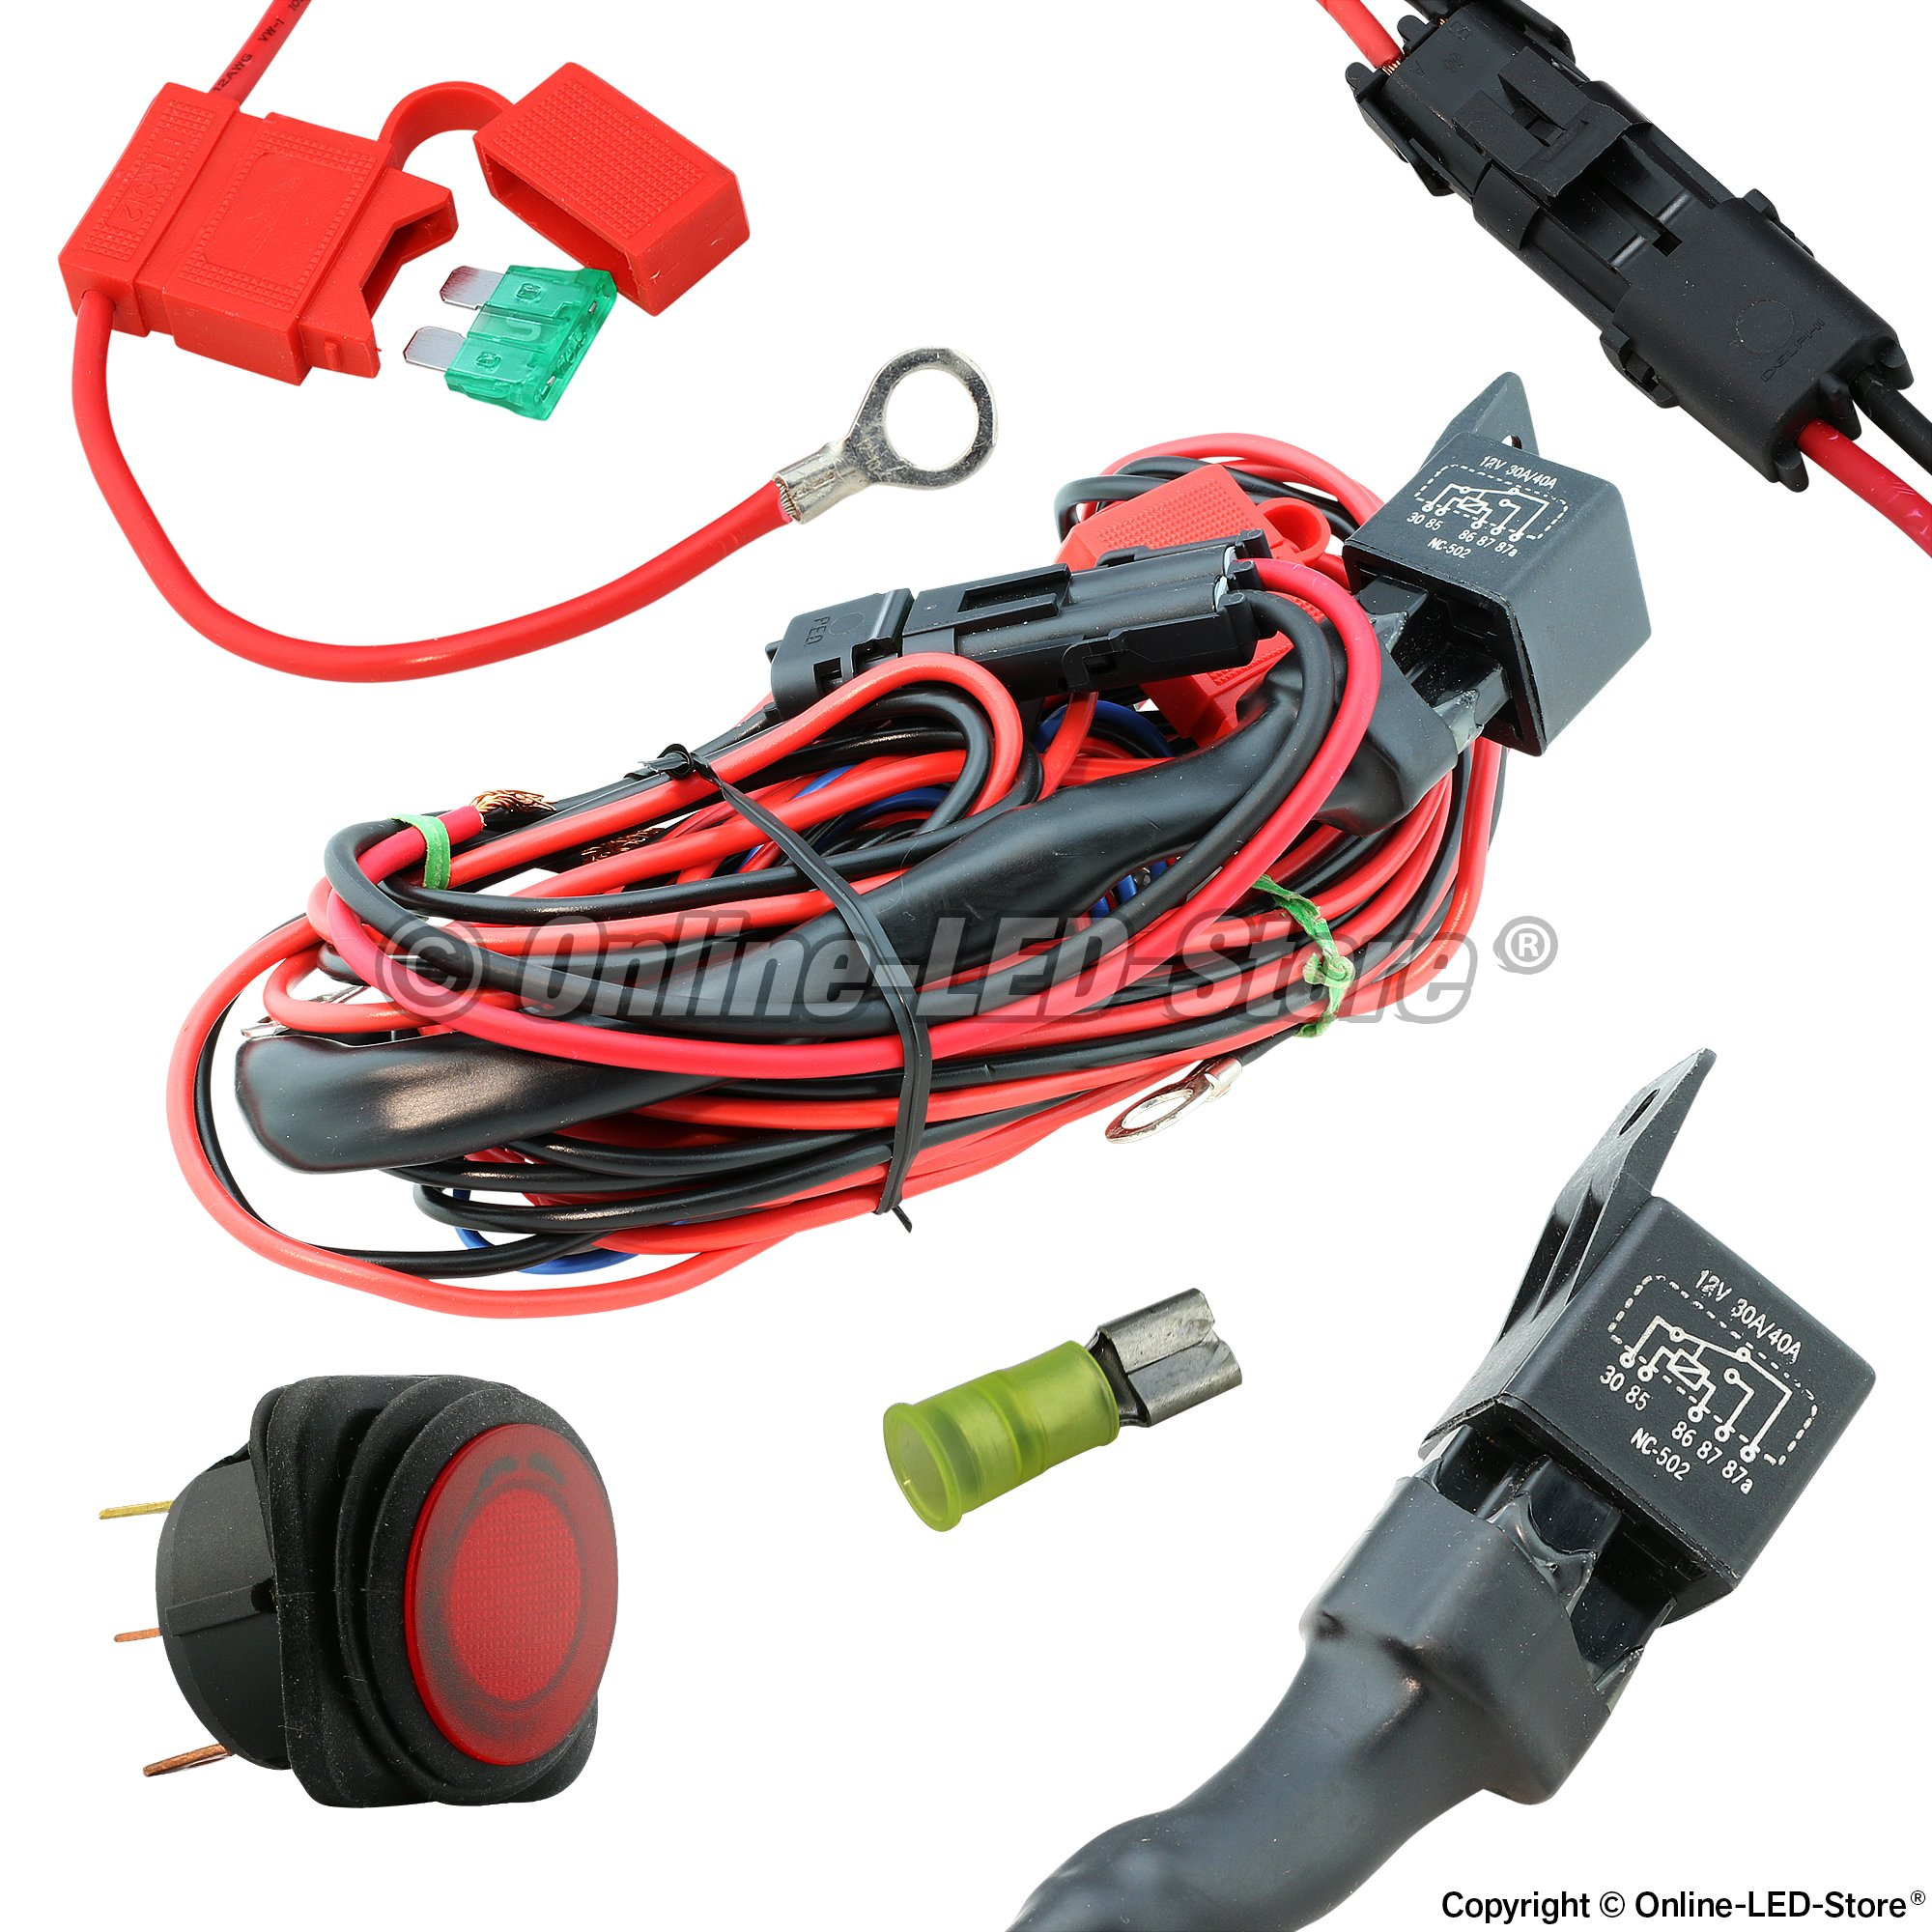 image_ORZLEDCTL002 MAINPC WEB_1 off road led light bar wiring harness off road light wiring kit  at webbmarketing.co